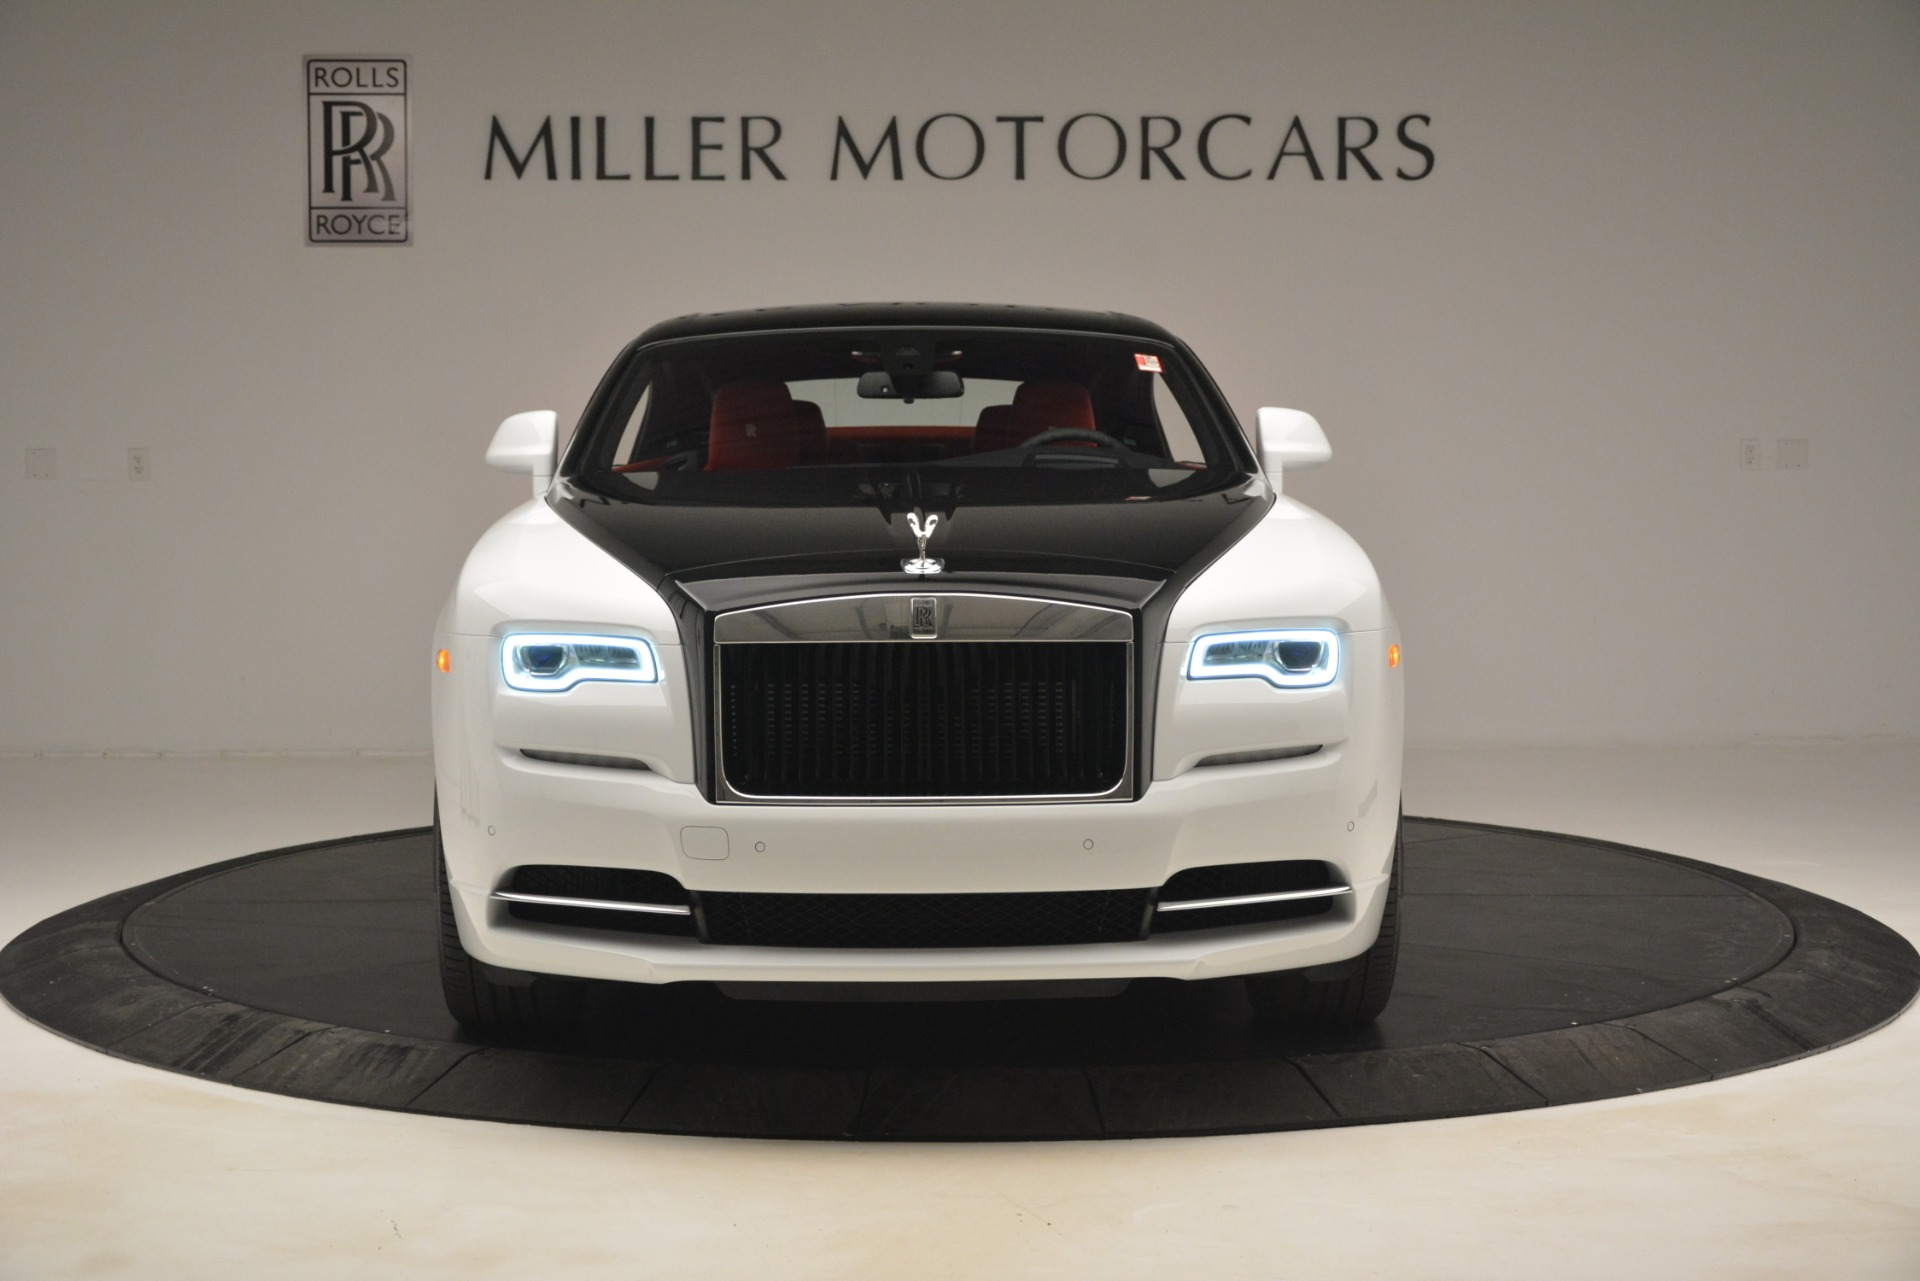 New 2019 Rolls-Royce Wraith  For Sale In Greenwich, CT 2987_p2